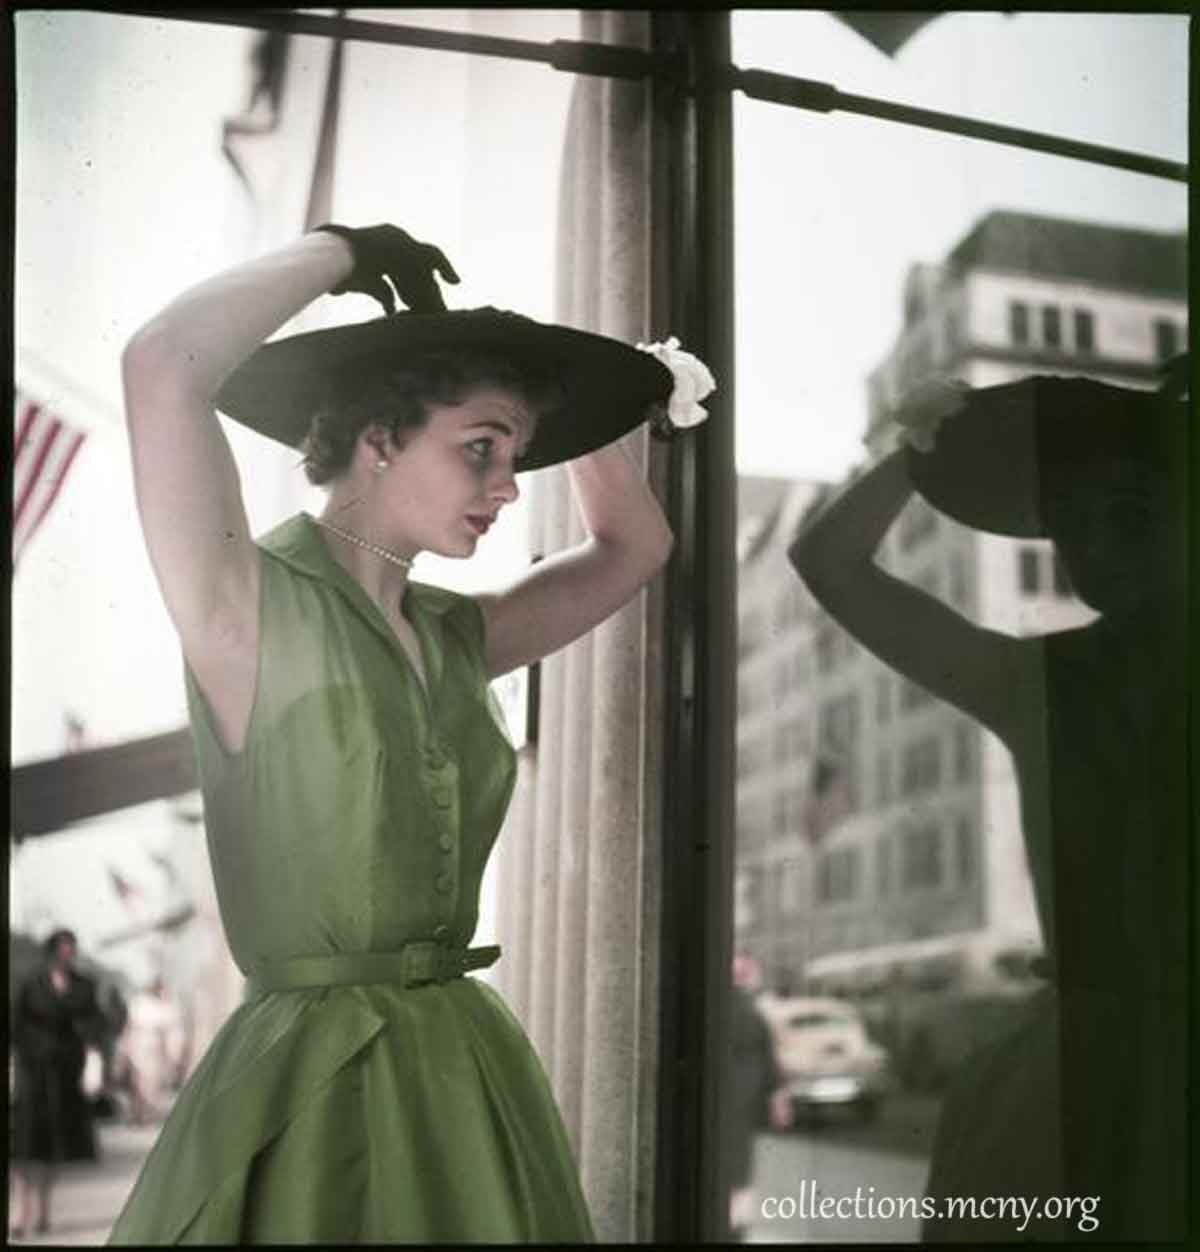 1950s-Fashion---Fifth-Avenue-Style-in-1952---Mary-Damon